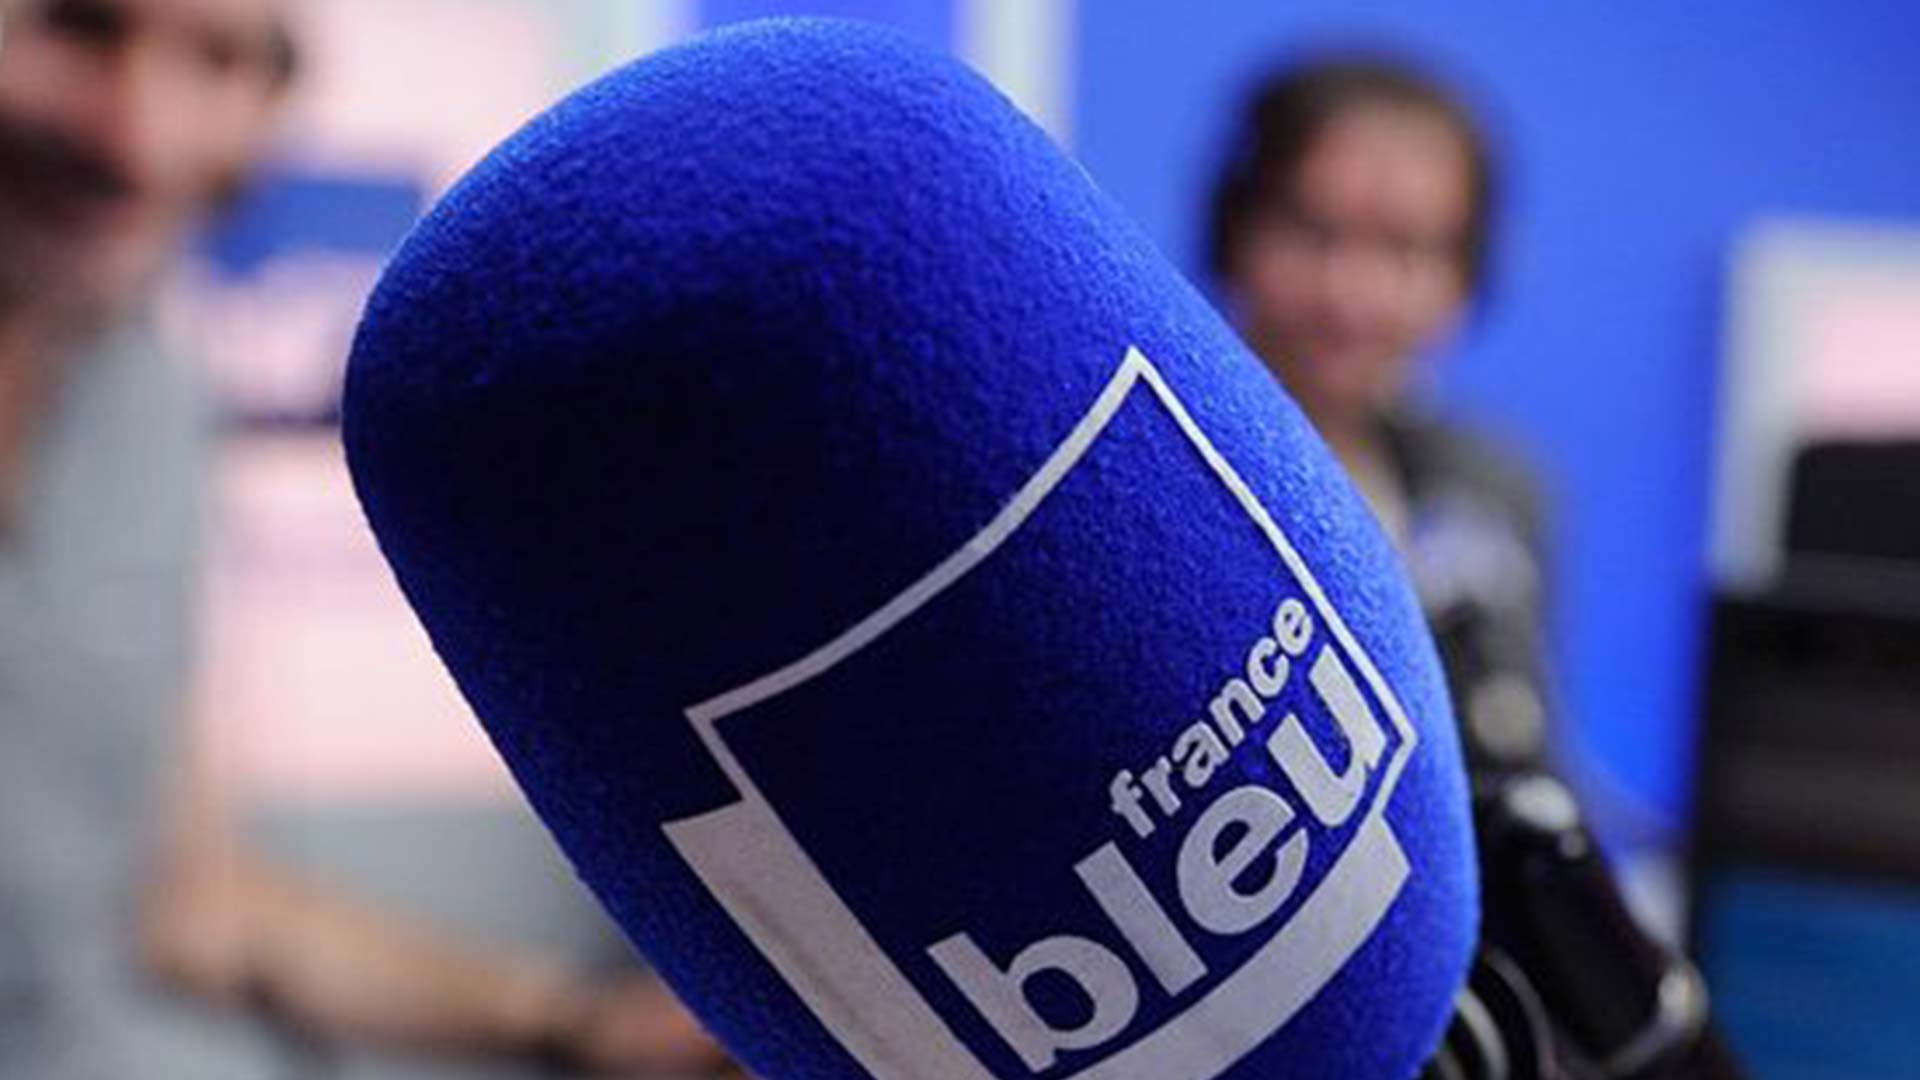 Emission de radio France Bleu Loire Ocean